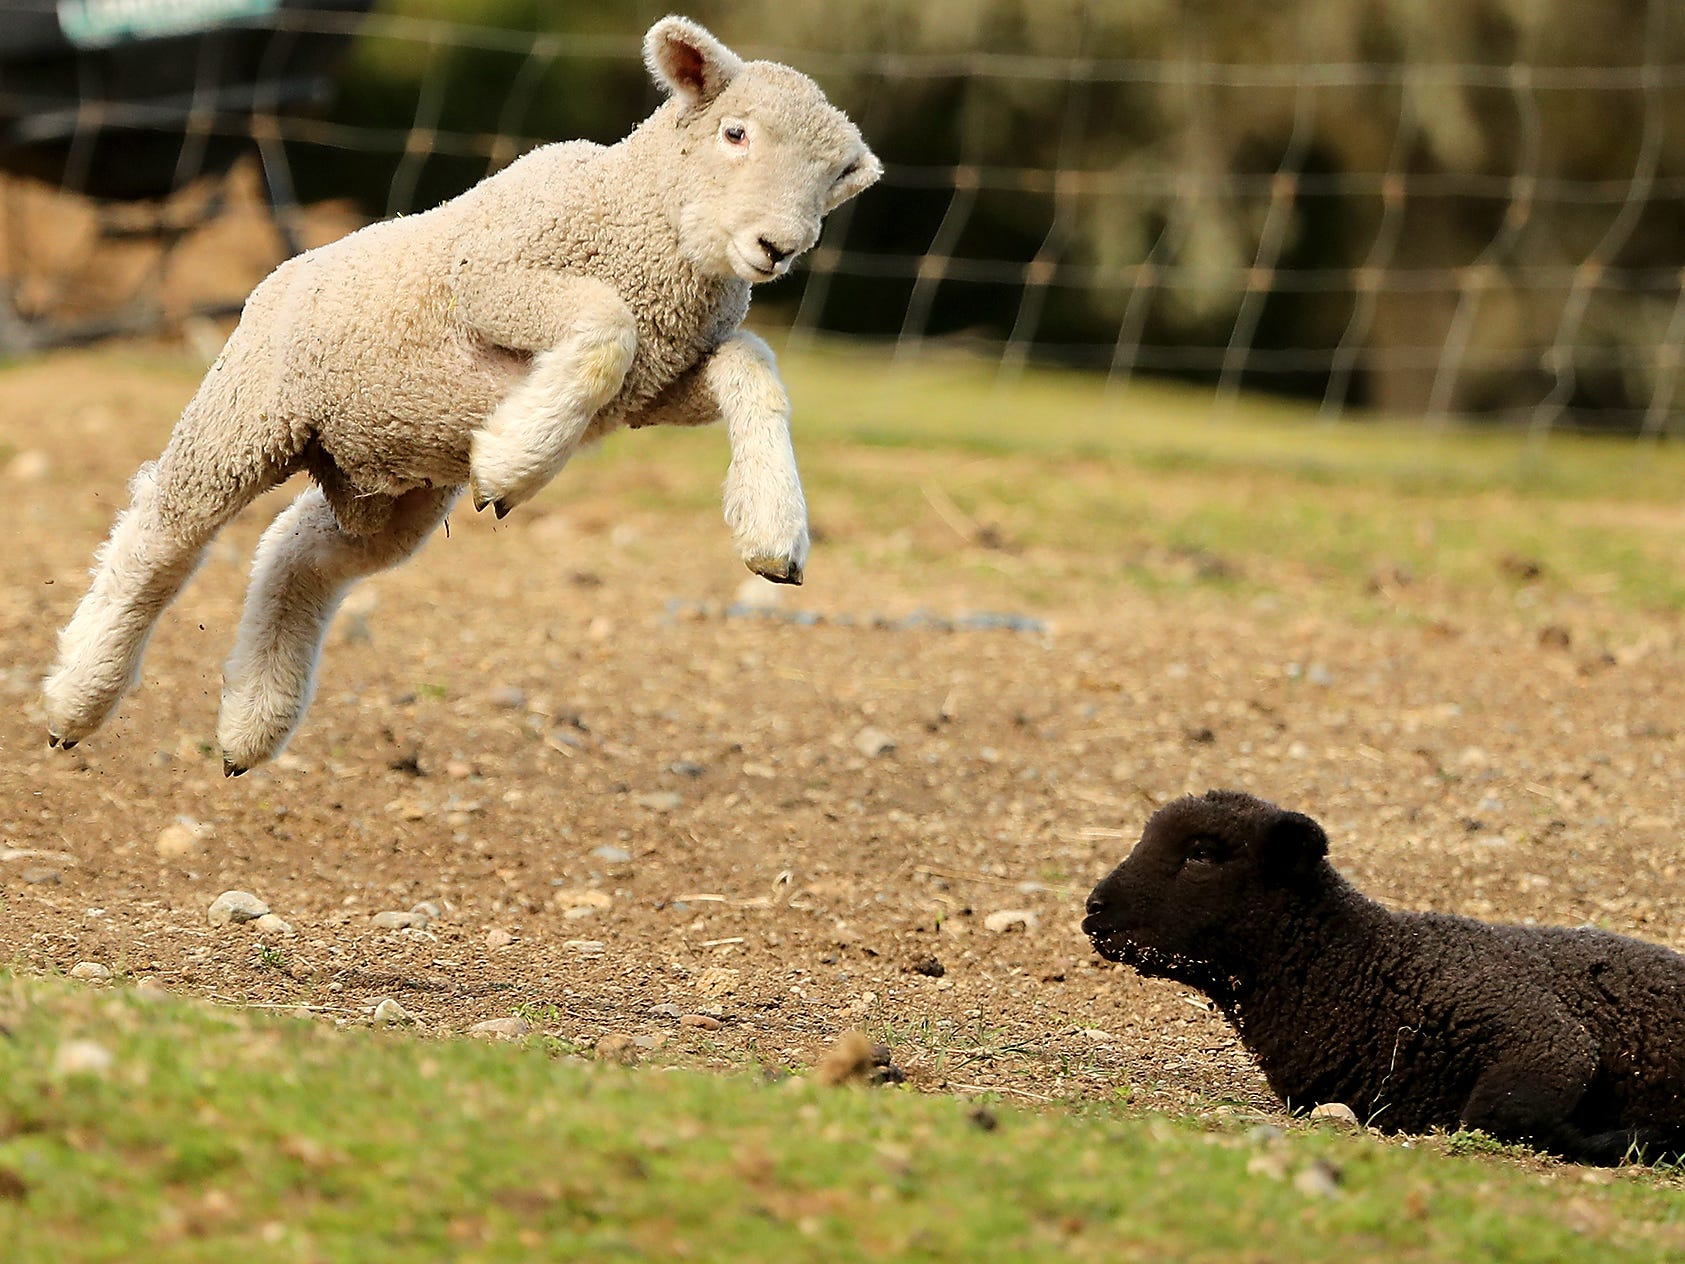 Lambs frolic in their pasture at Scandia Creek Farm in Poulsbo on March 22, 2019.